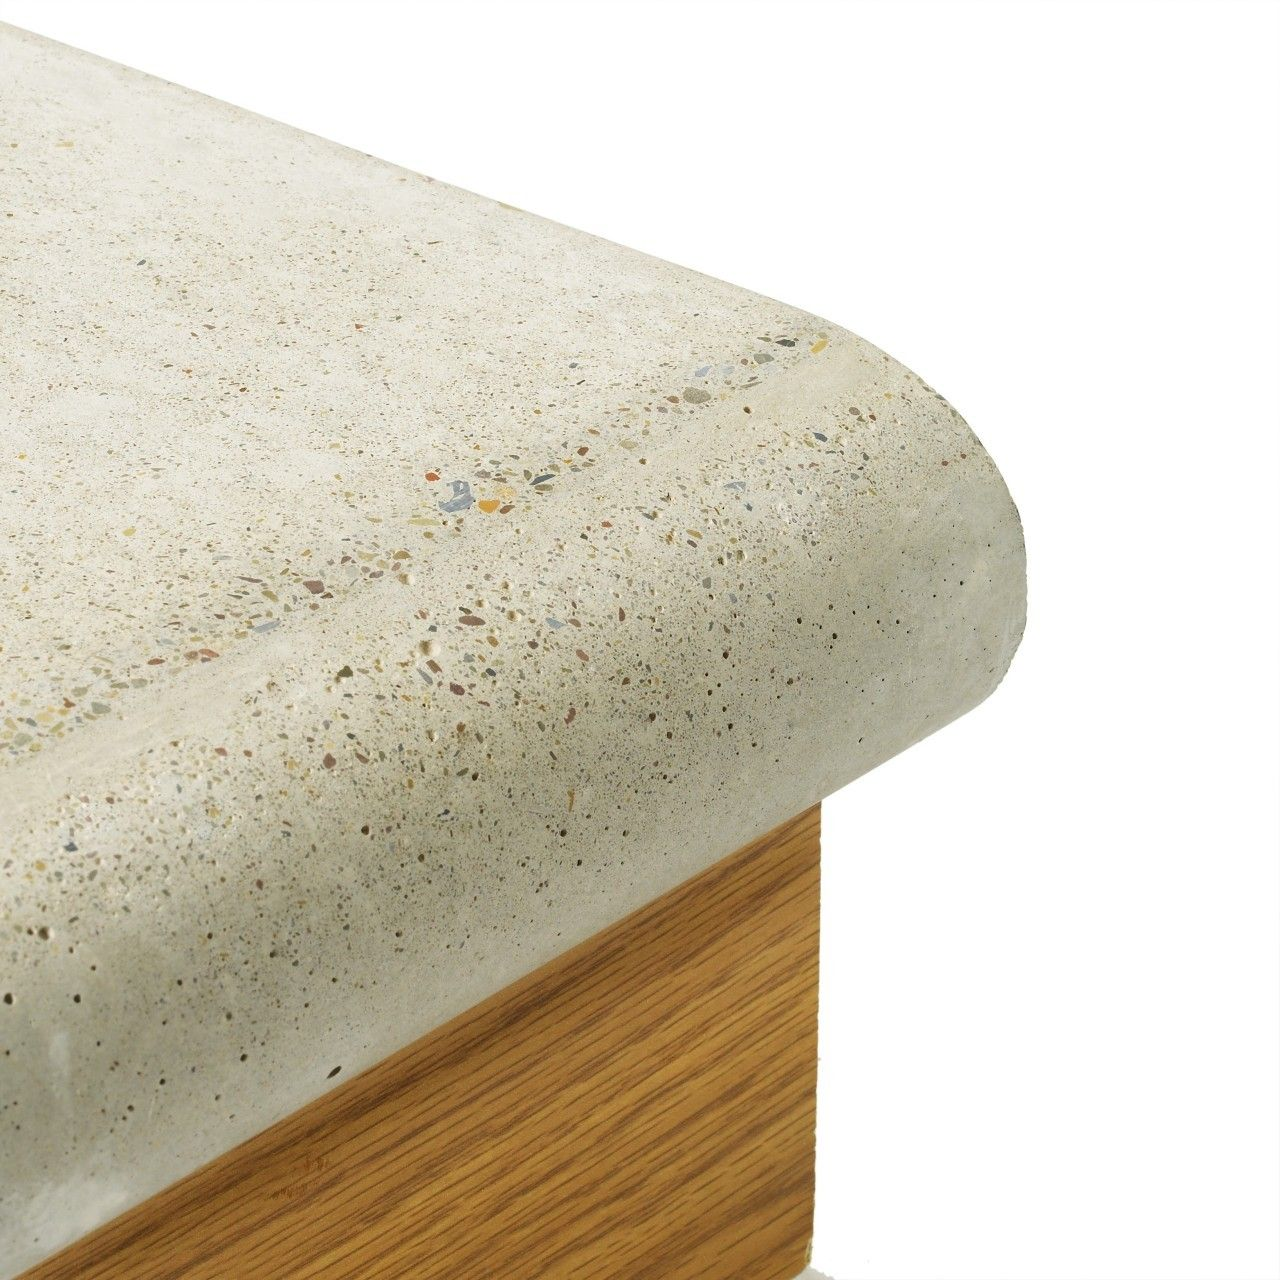 Full Bullnose Edge Profile Concrete Countertop Forms Concrete